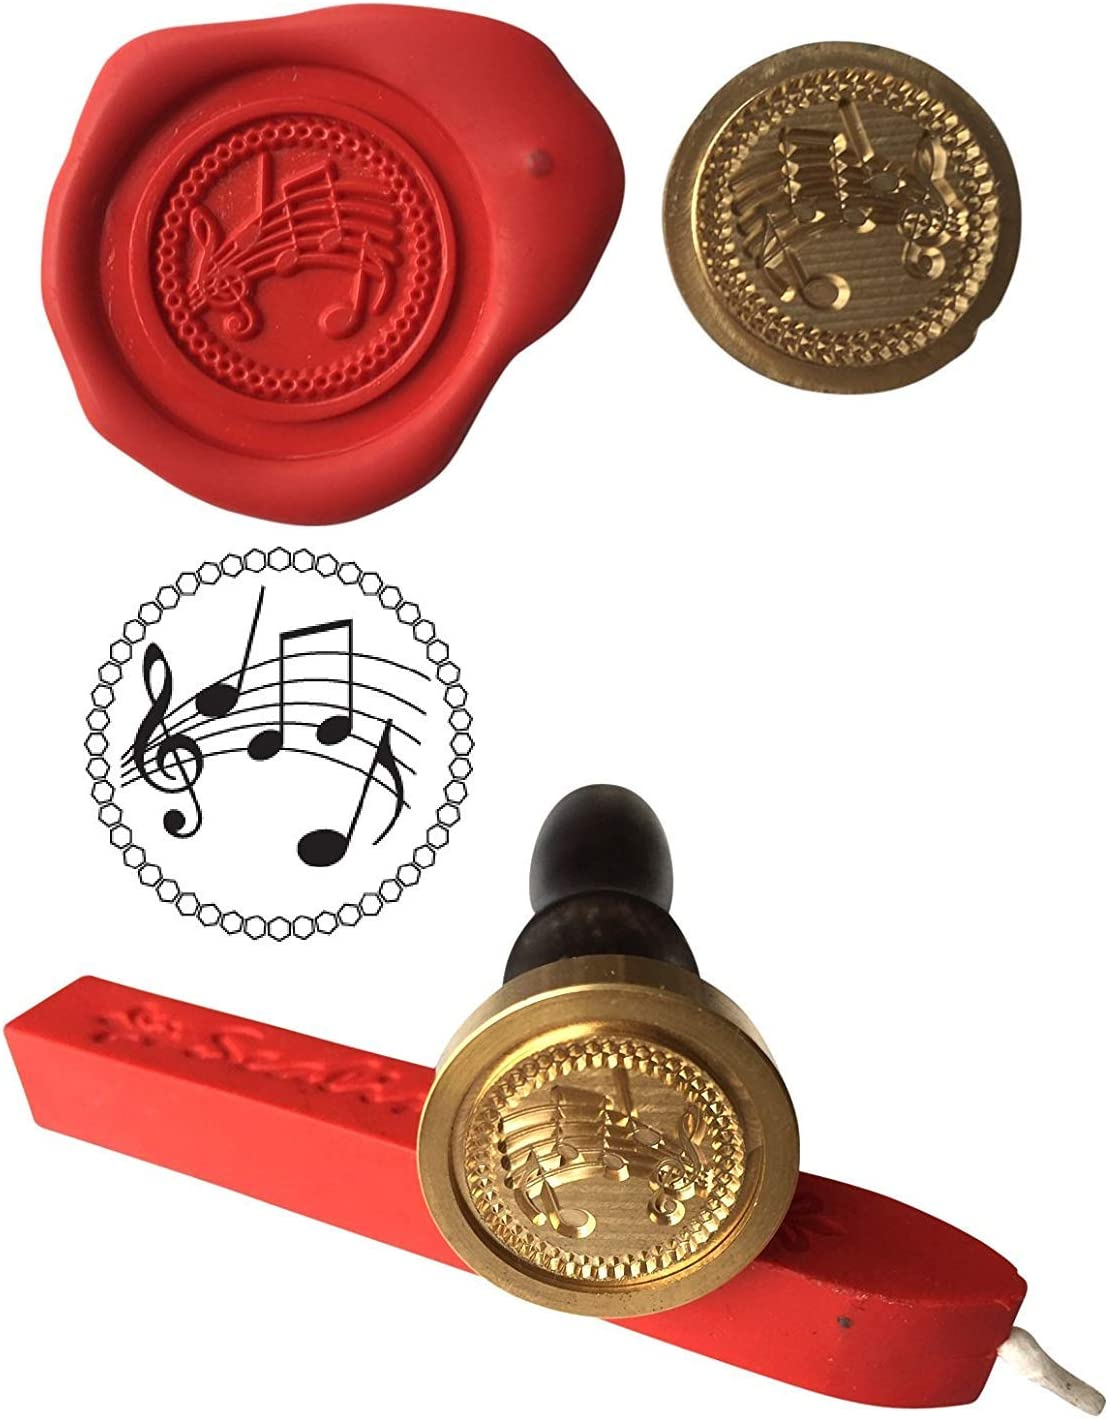 S14 Wax Stamp MUSIC SHEET Music Drama Seal and Red Wax Stick XWSC234-KIT